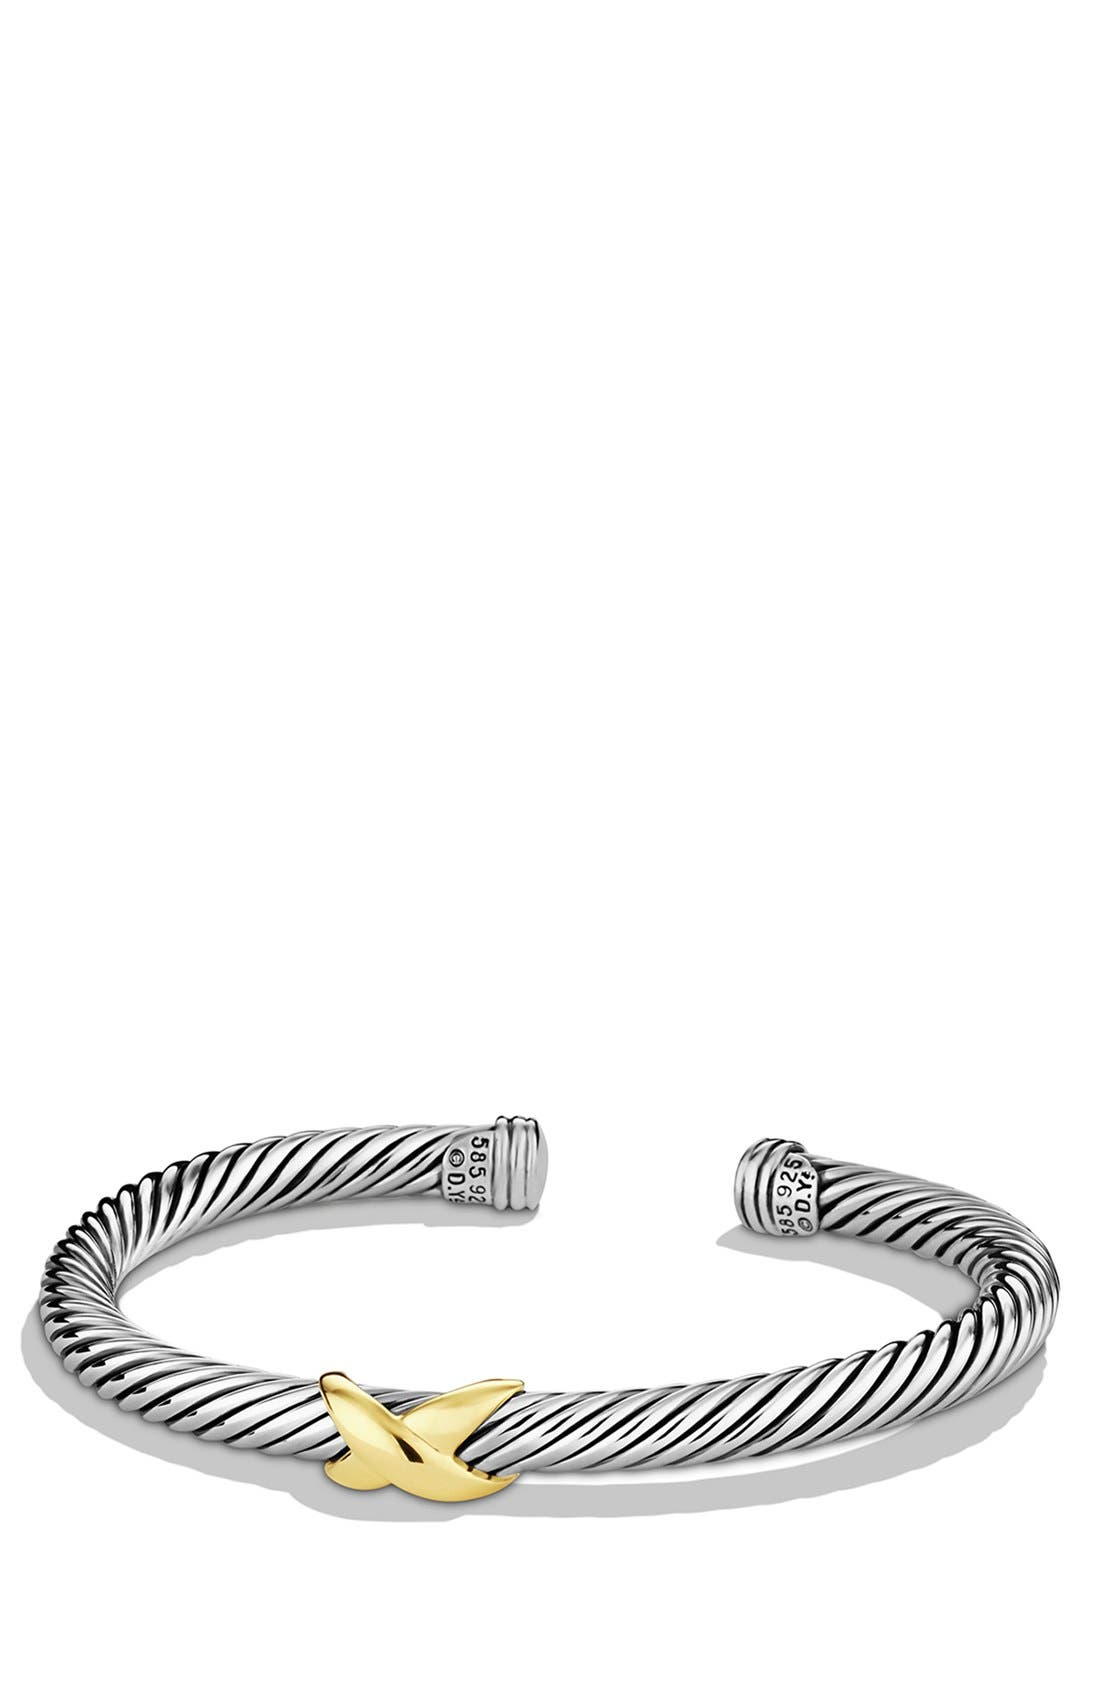 DAVID YURMAN X Bracelet with Gold